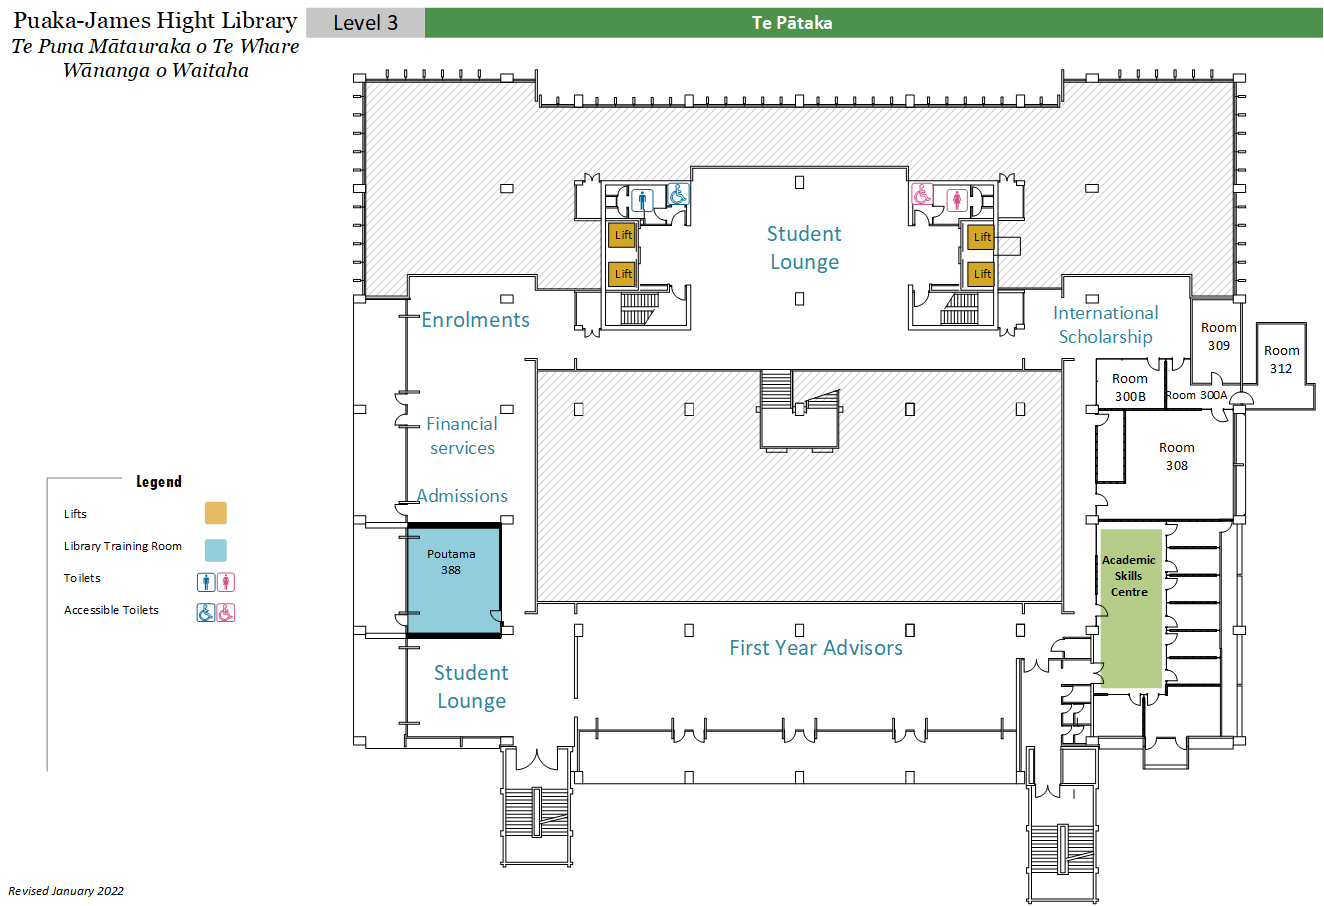 Central library level 3 floor plan